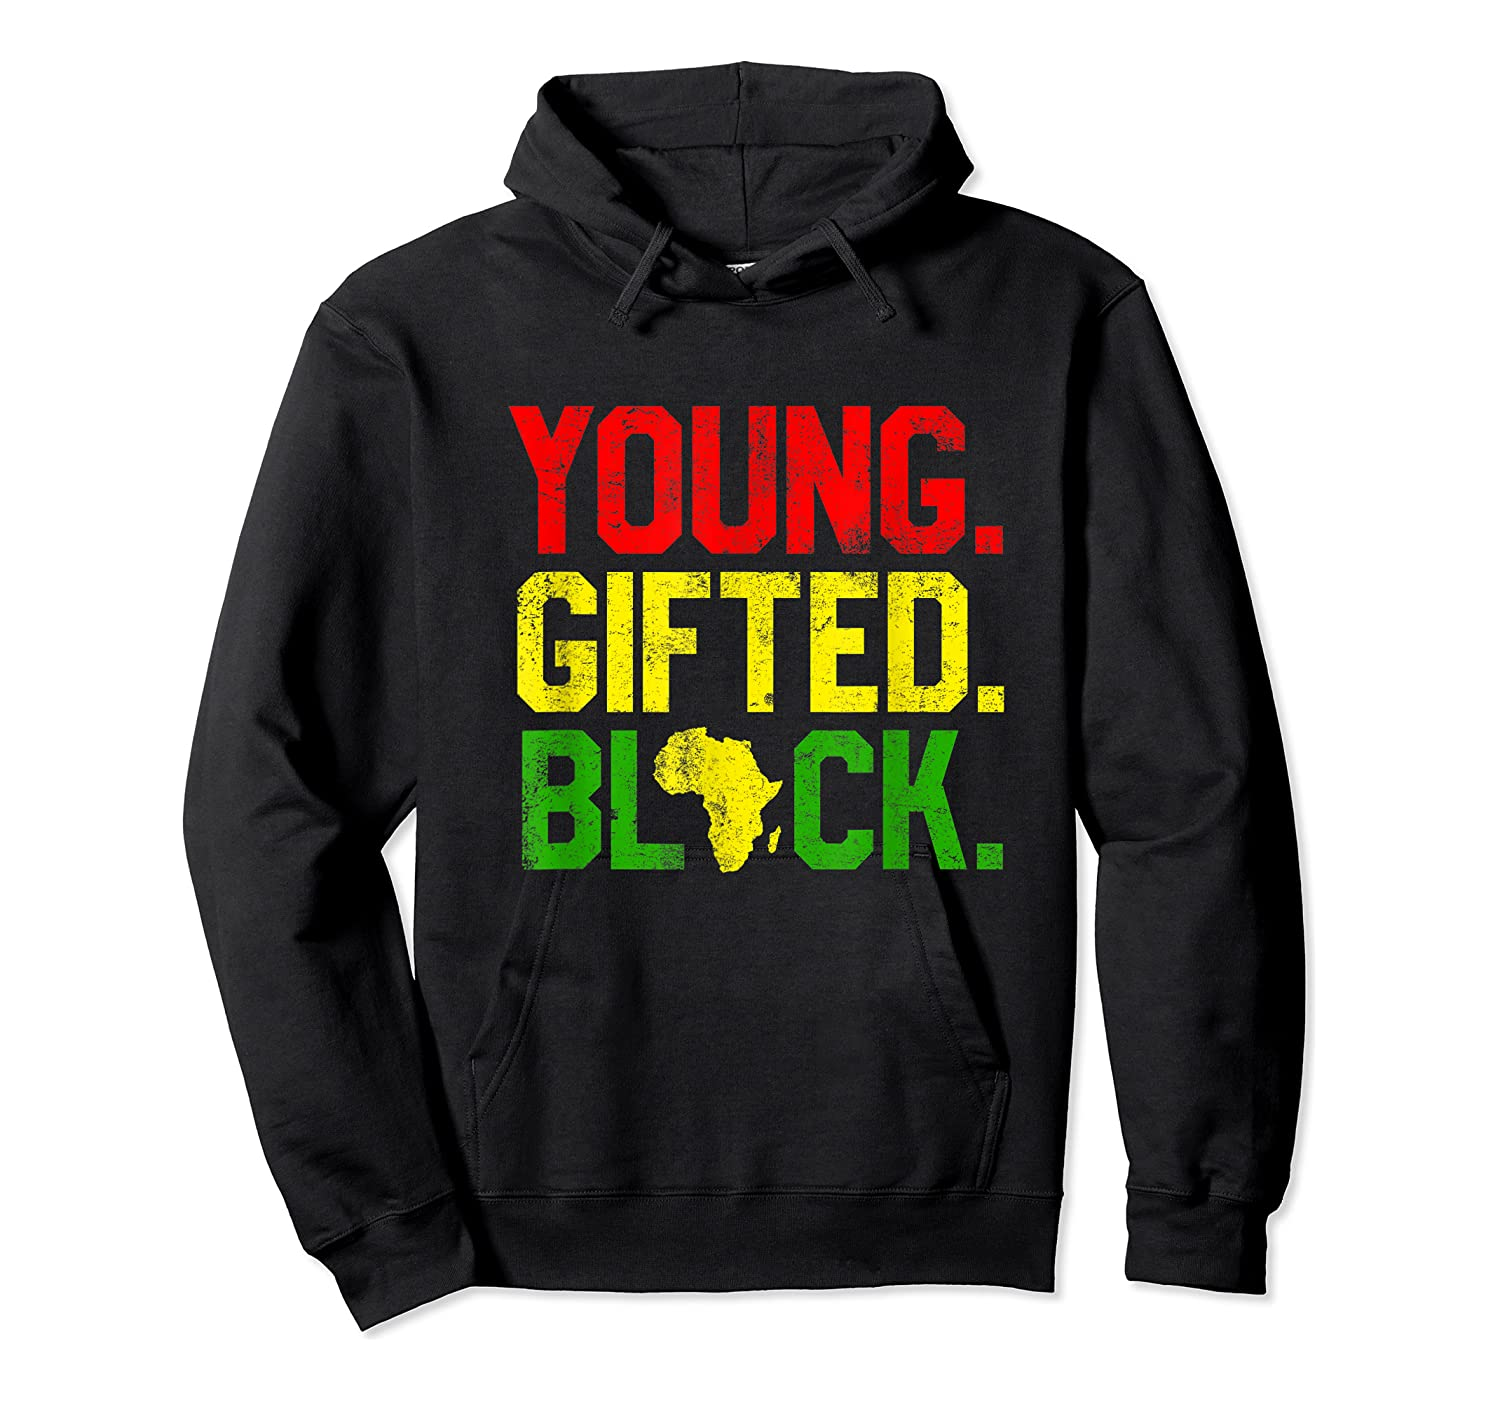 Gifted Black History Month African American Gifts Shirts Unisex Pullover Hoodie